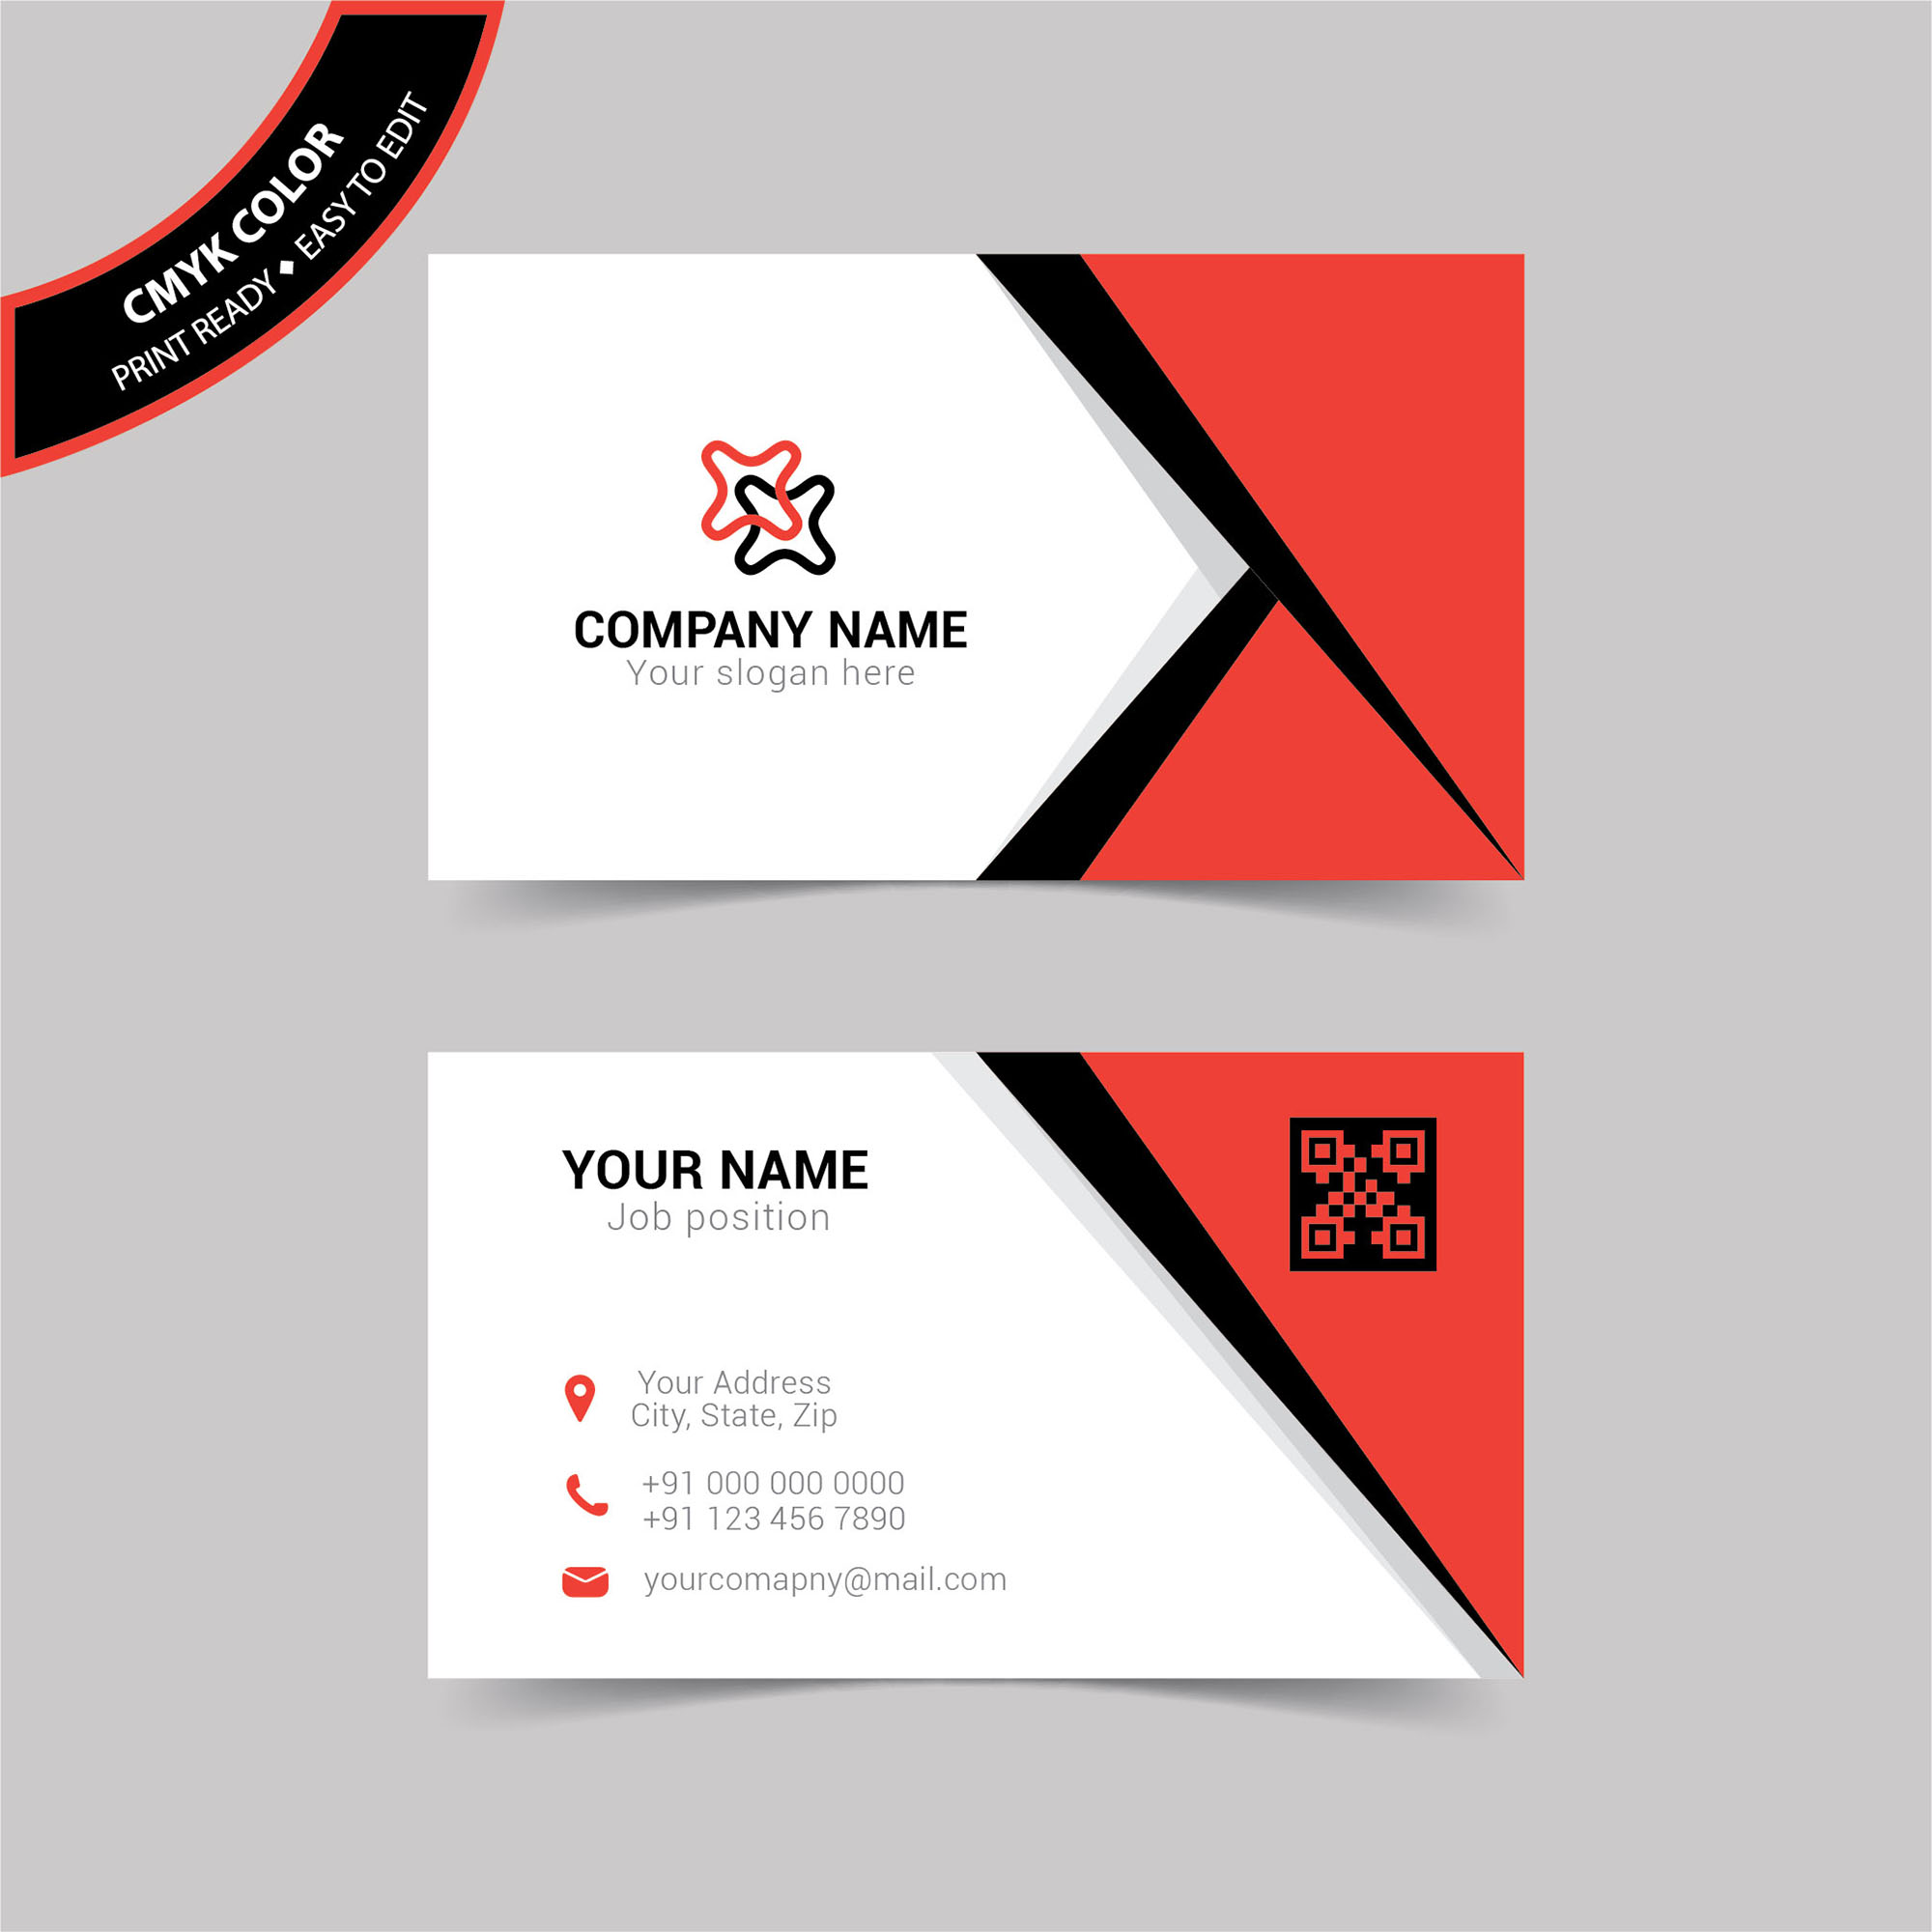 Simple corporate business card free download wisxi business card business cards business card design business card template design templates colourmoves